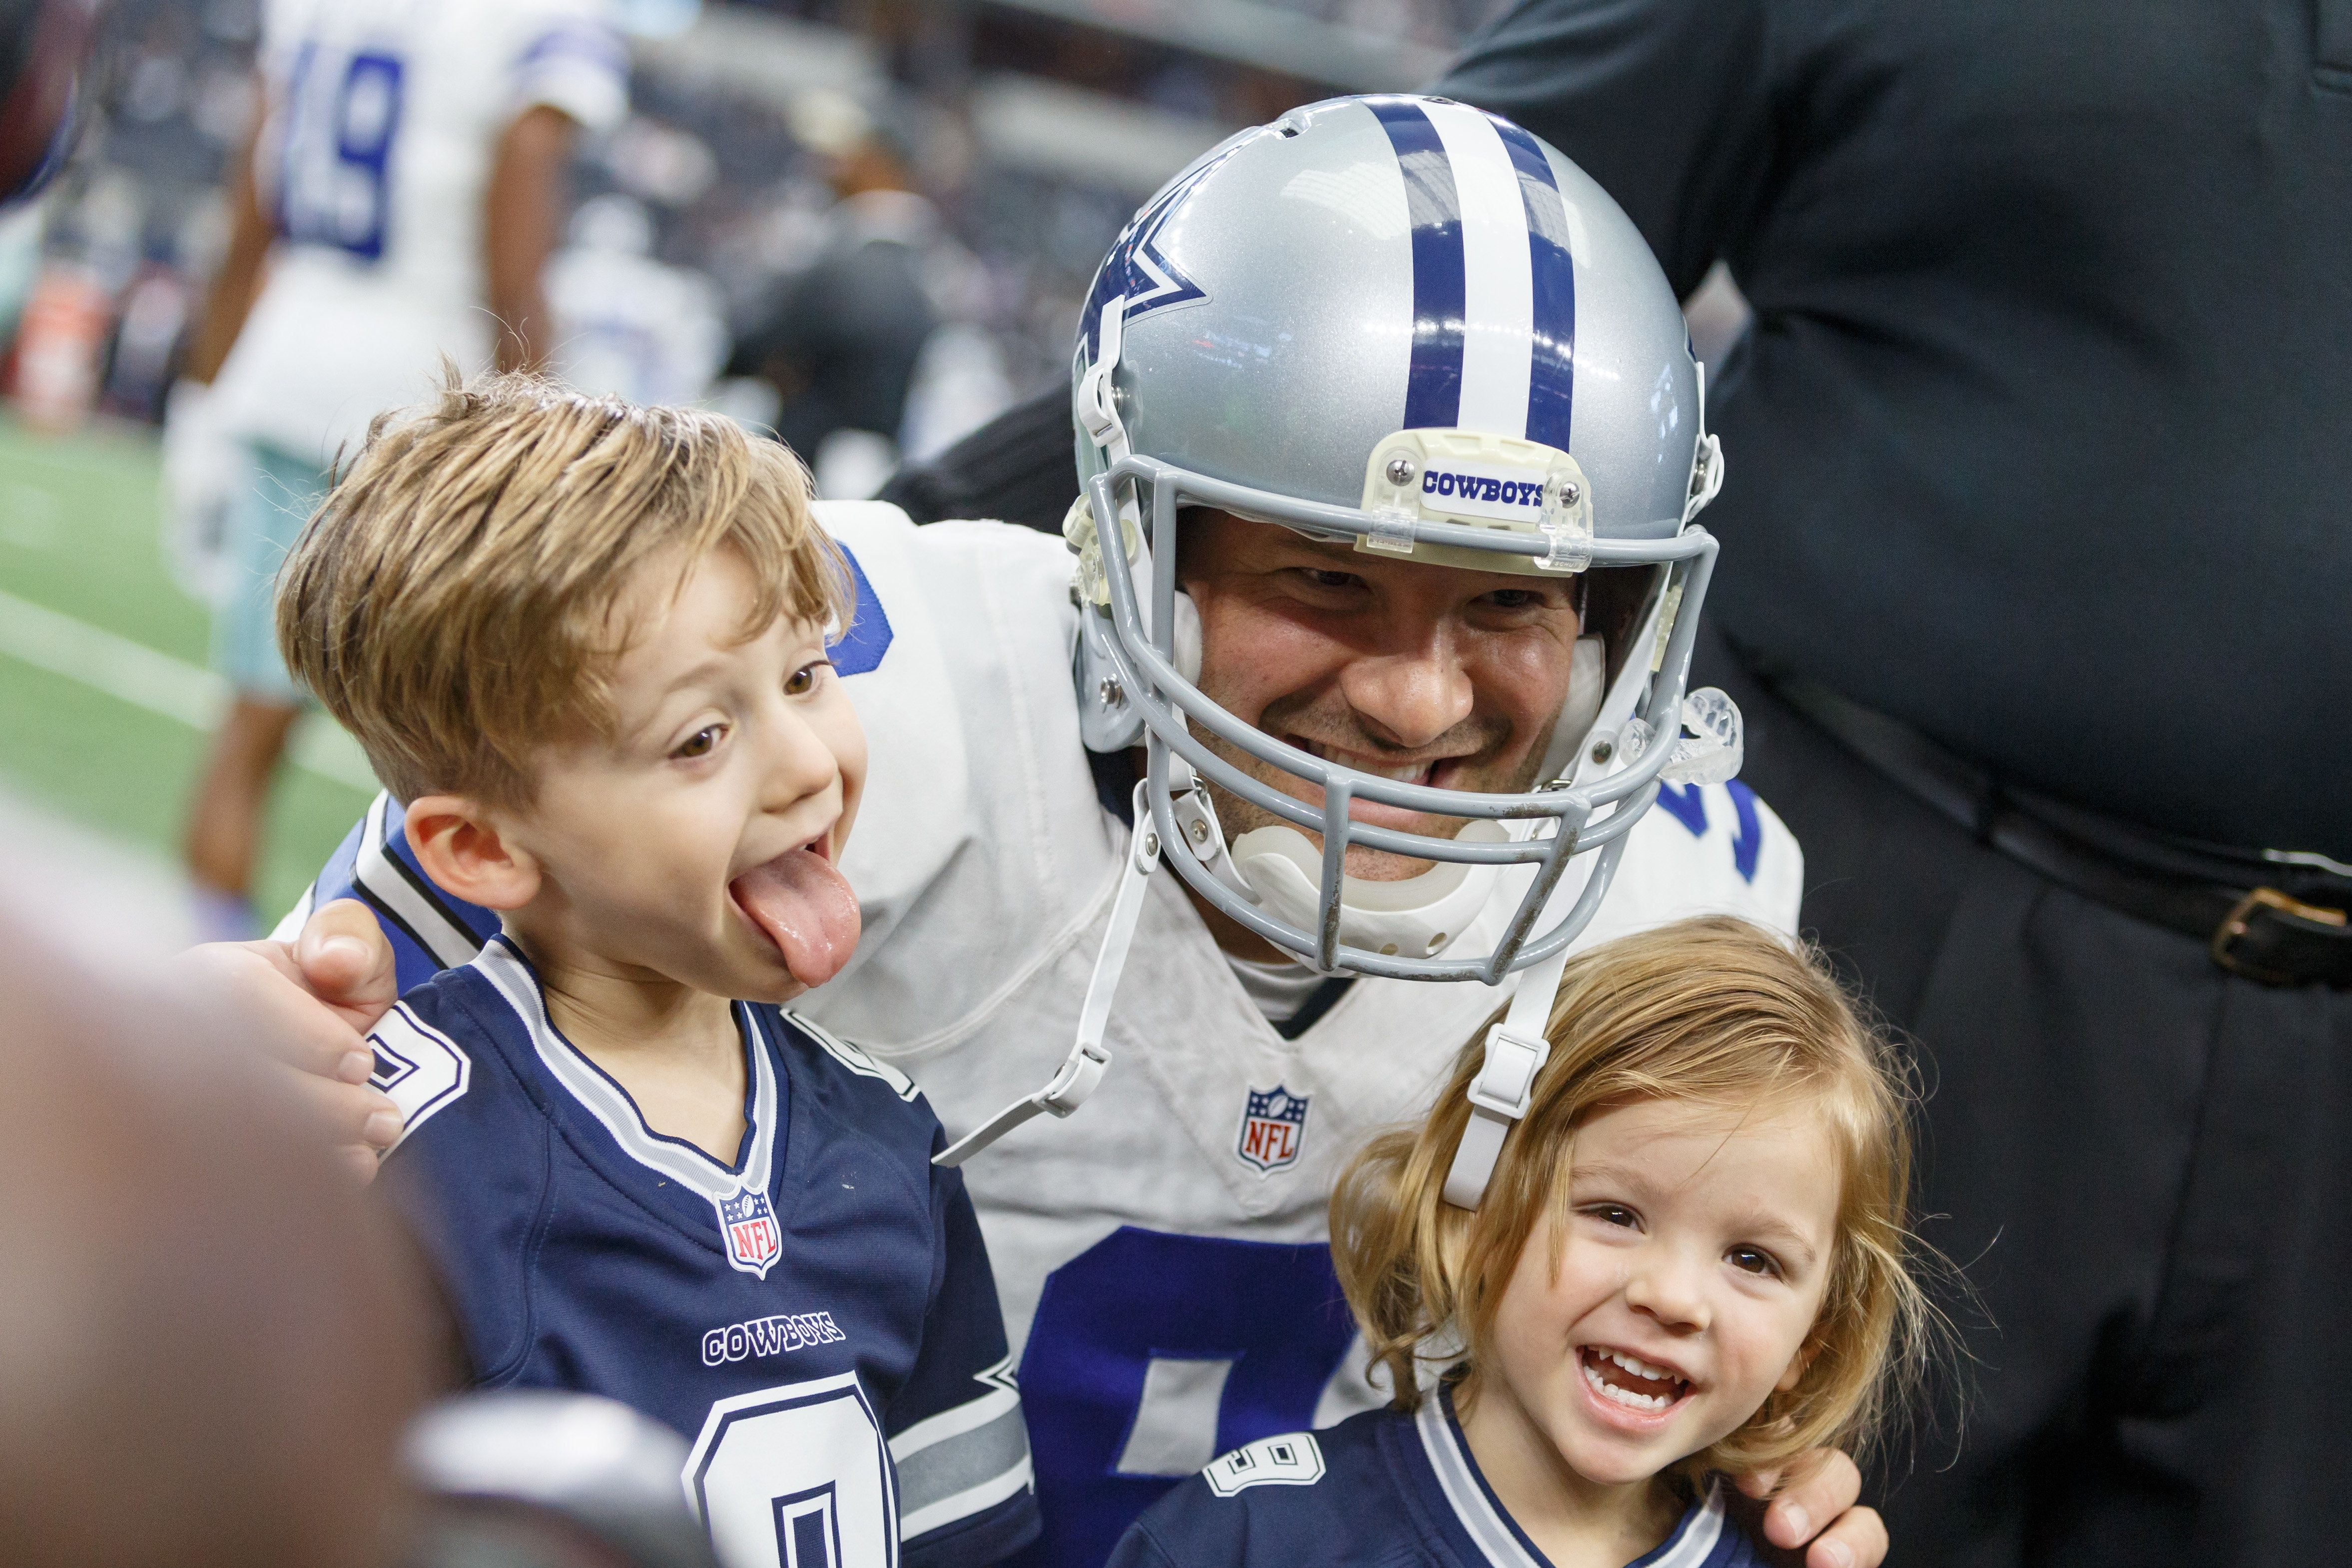 Tony Romo has two sons,4-year-old Hawkins and 3-year-old Rivers.